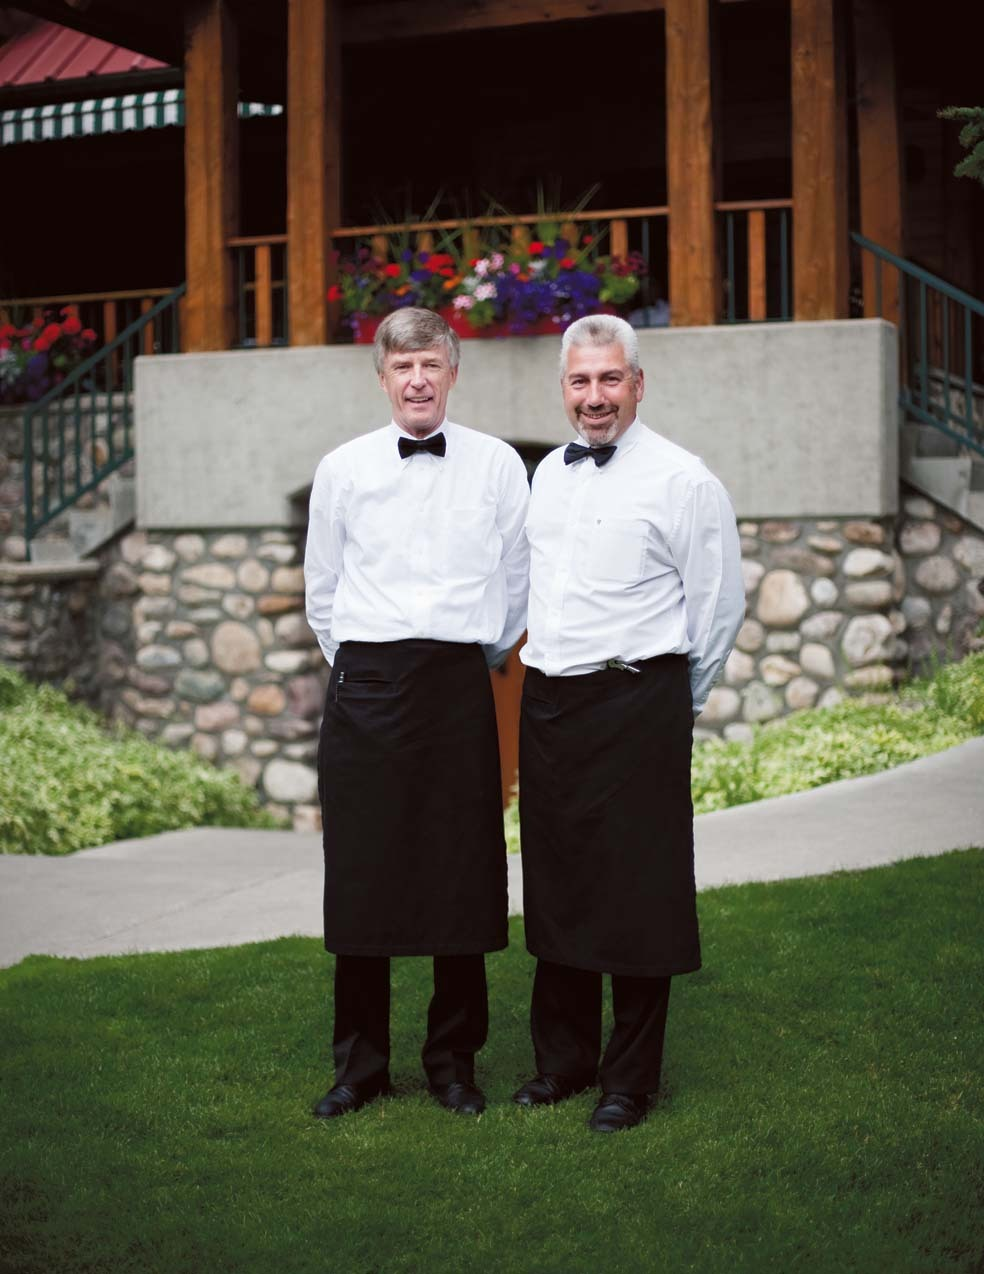 James Robson and Yves Drouin, servers at the Post Hotel in Lake Louise, get ready for another busy shift. 